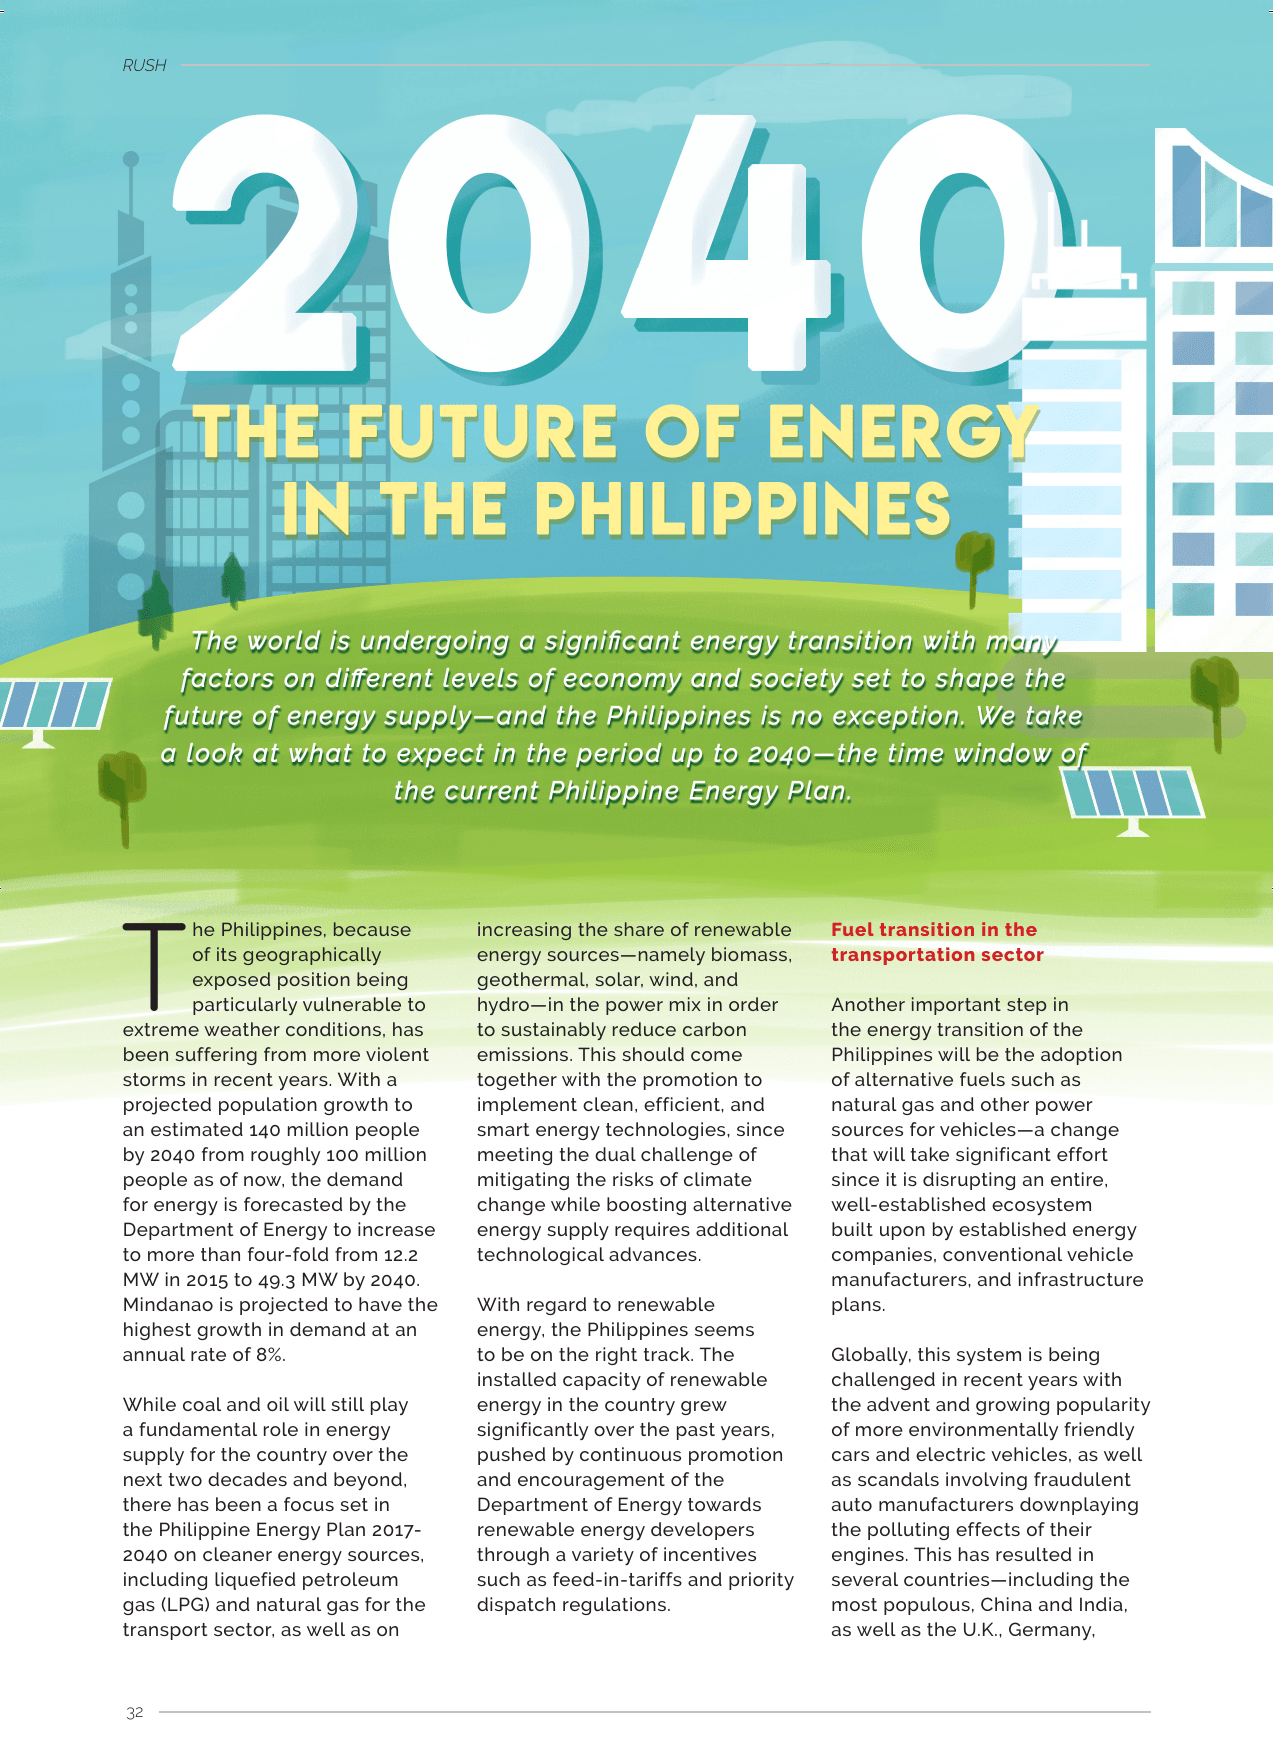 2040: The Future of Energy in the Philippines - Phoenix